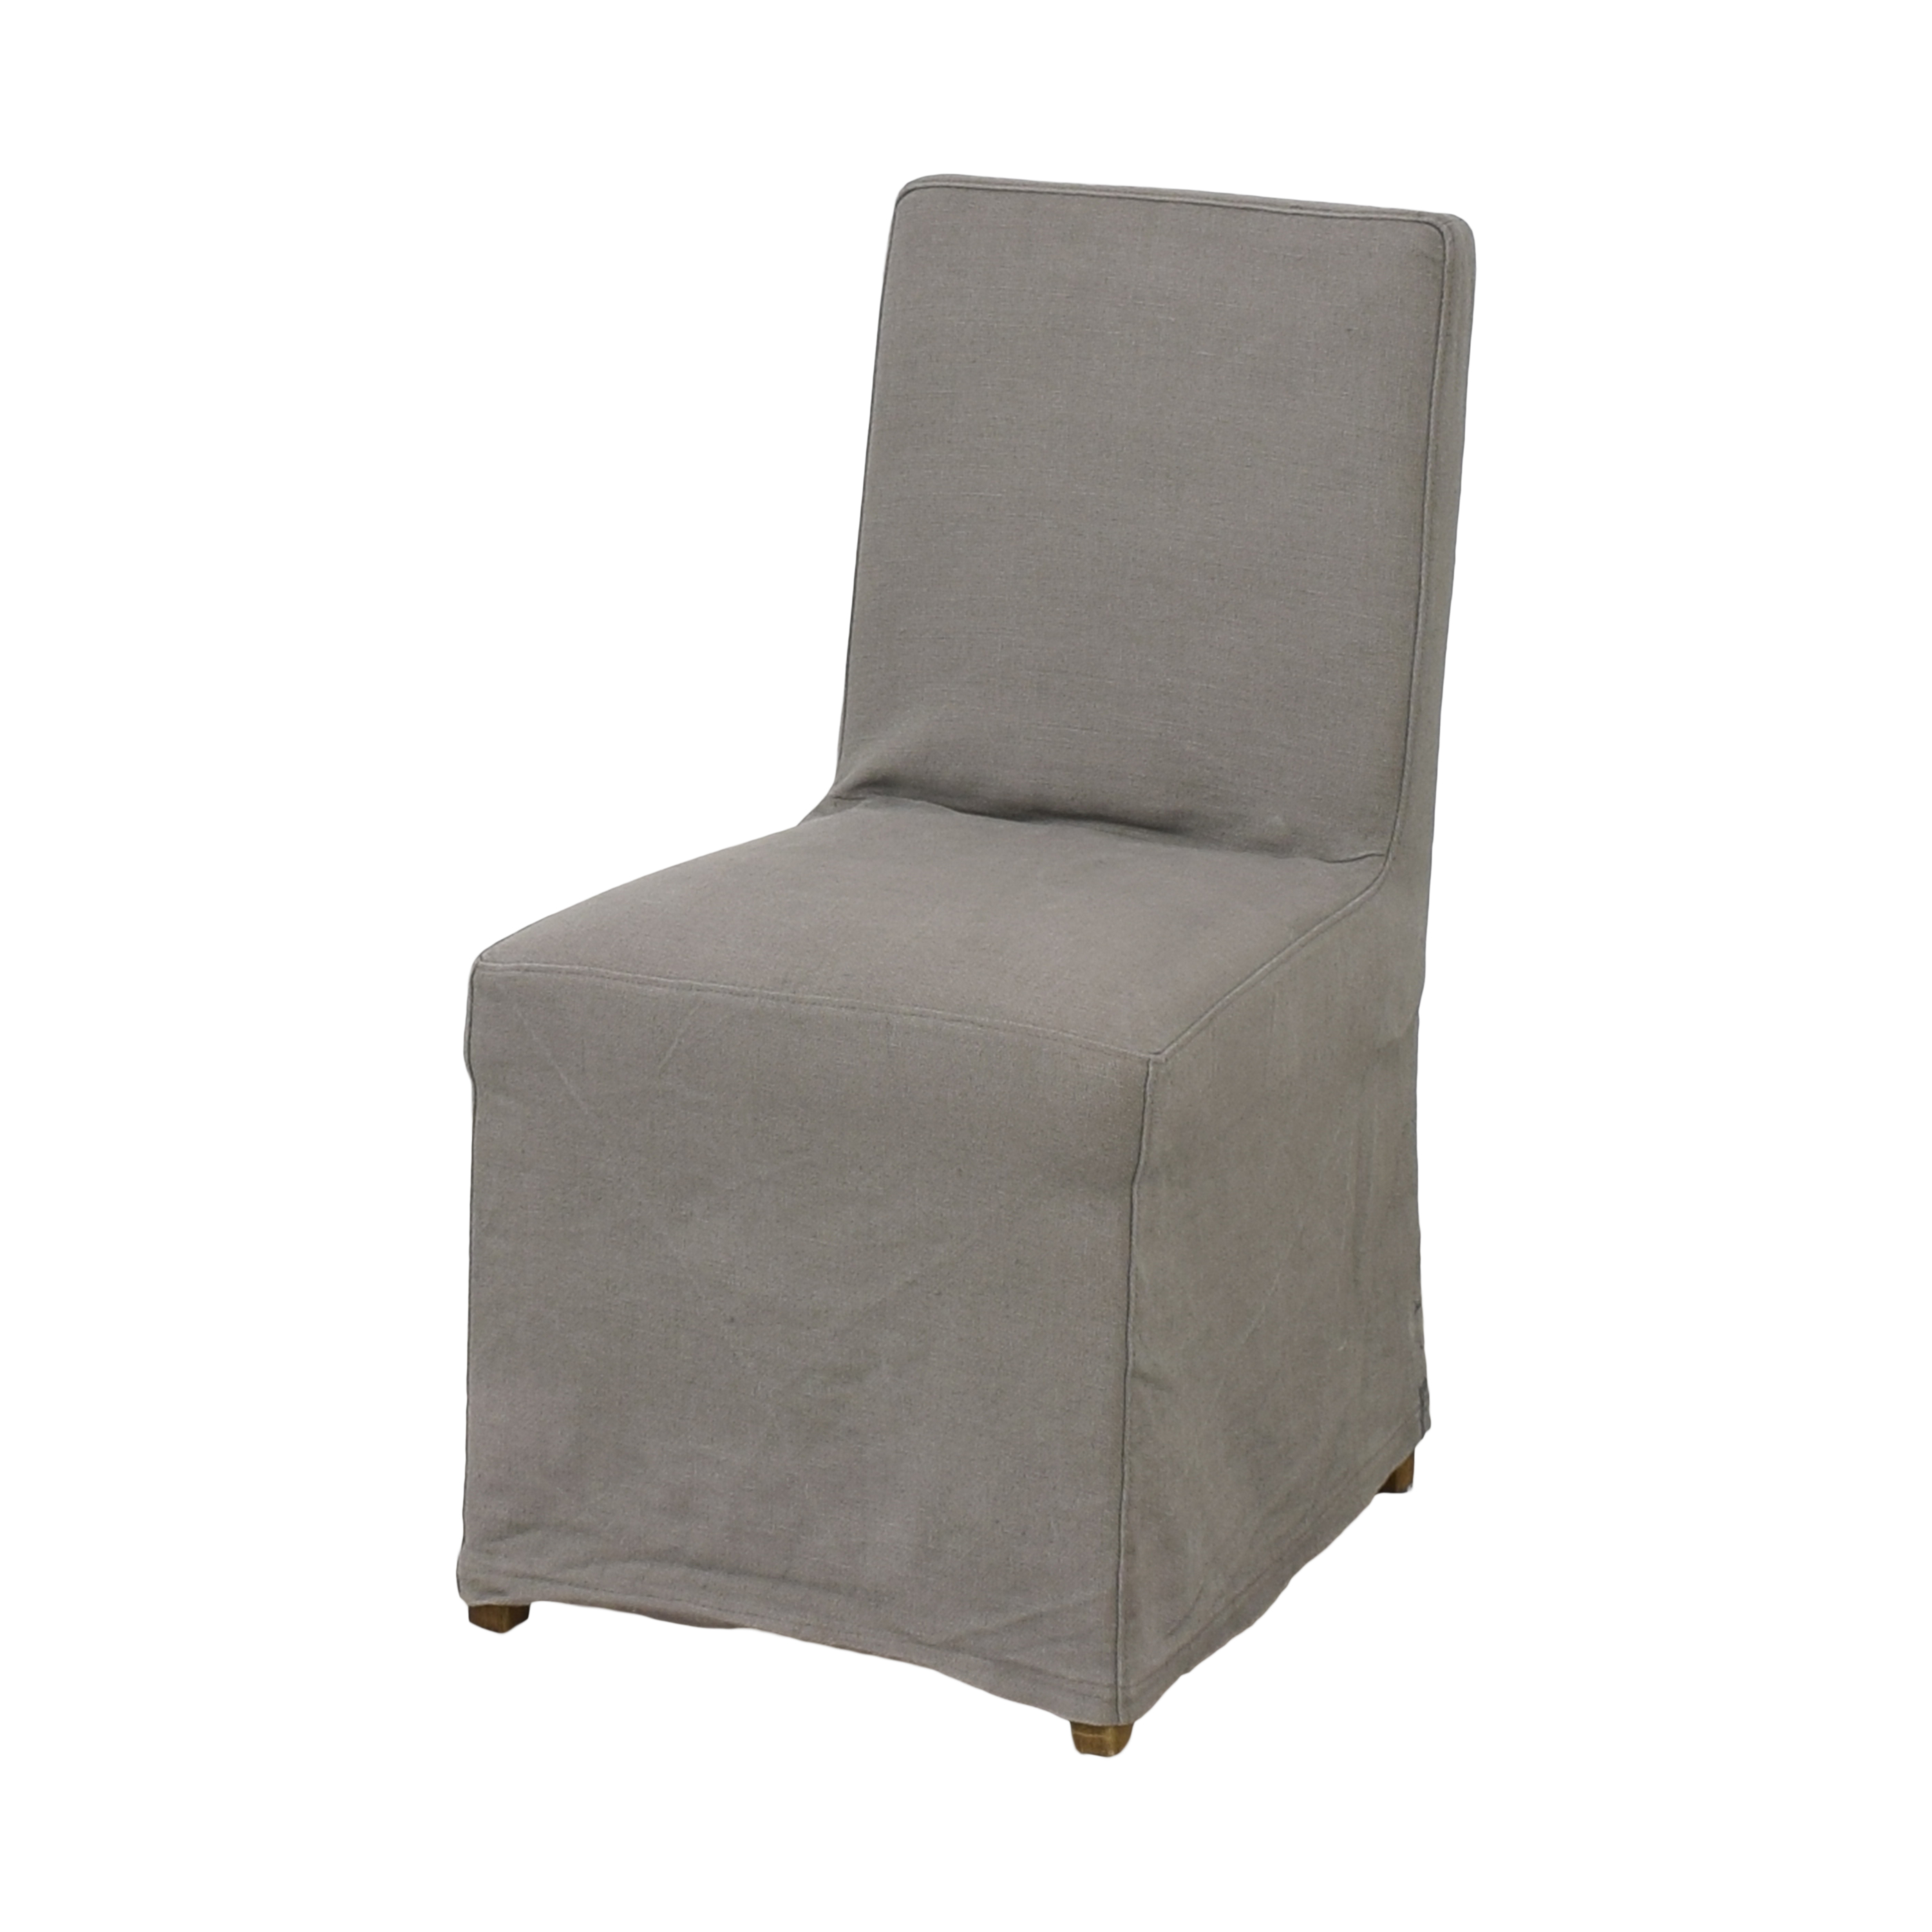 Restoration Hardware Restoration Hardware Parsons Hudson Slipcovered Side Chair used